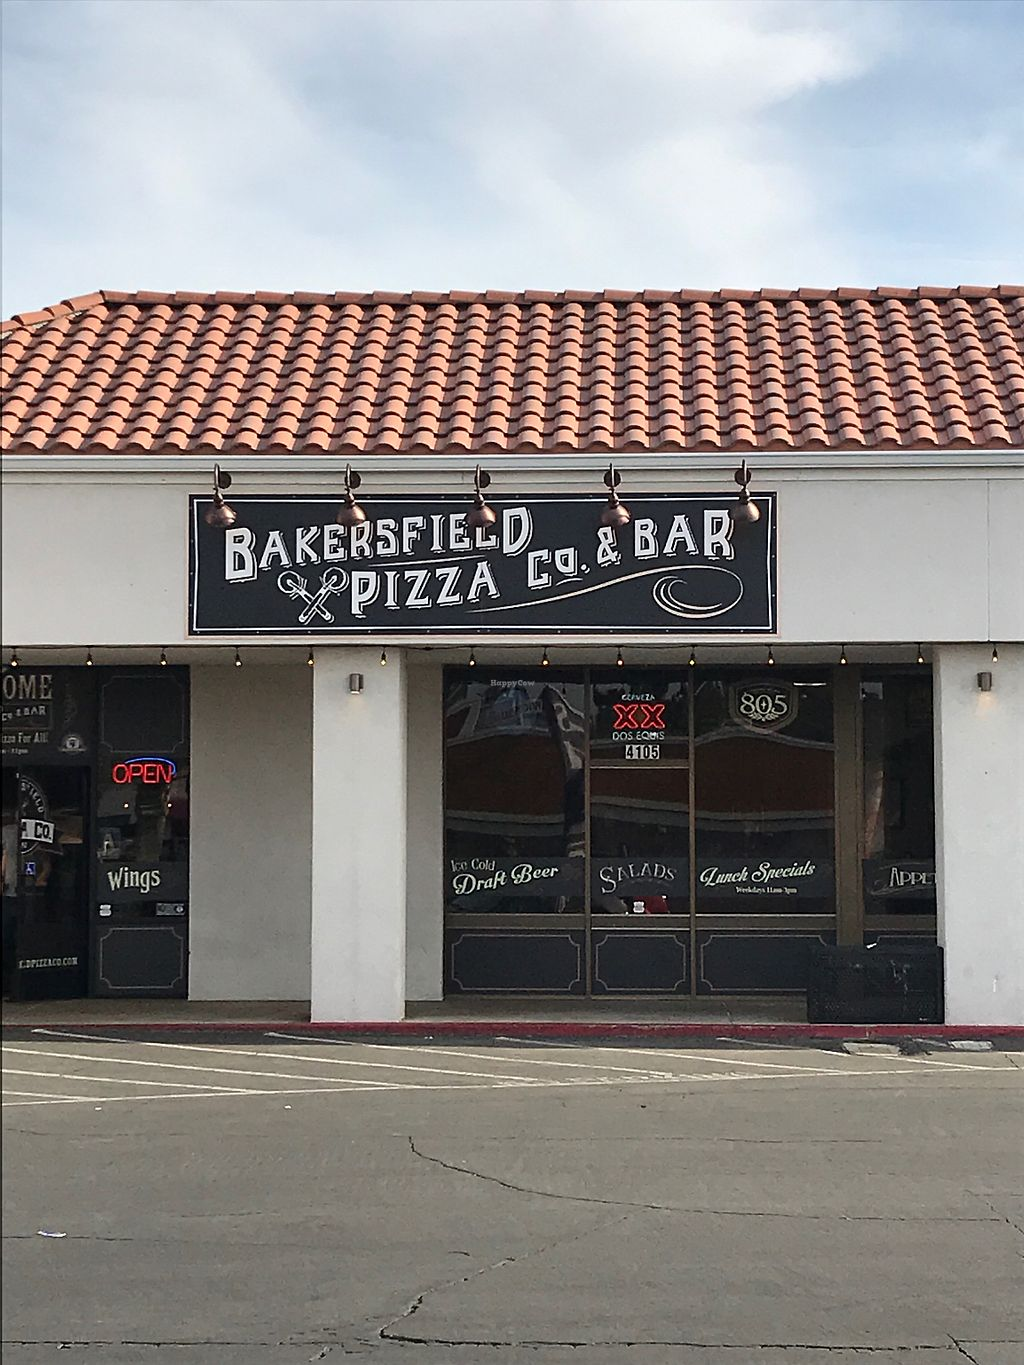 "Photo of Bakersfield Pizza Co  by <a href=""/members/profile/glassesgirl79"">glassesgirl79</a> <br/>Entrance to restaurant  <br/> April 17, 2018  - <a href='/contact/abuse/image/117849/387406'>Report</a>"